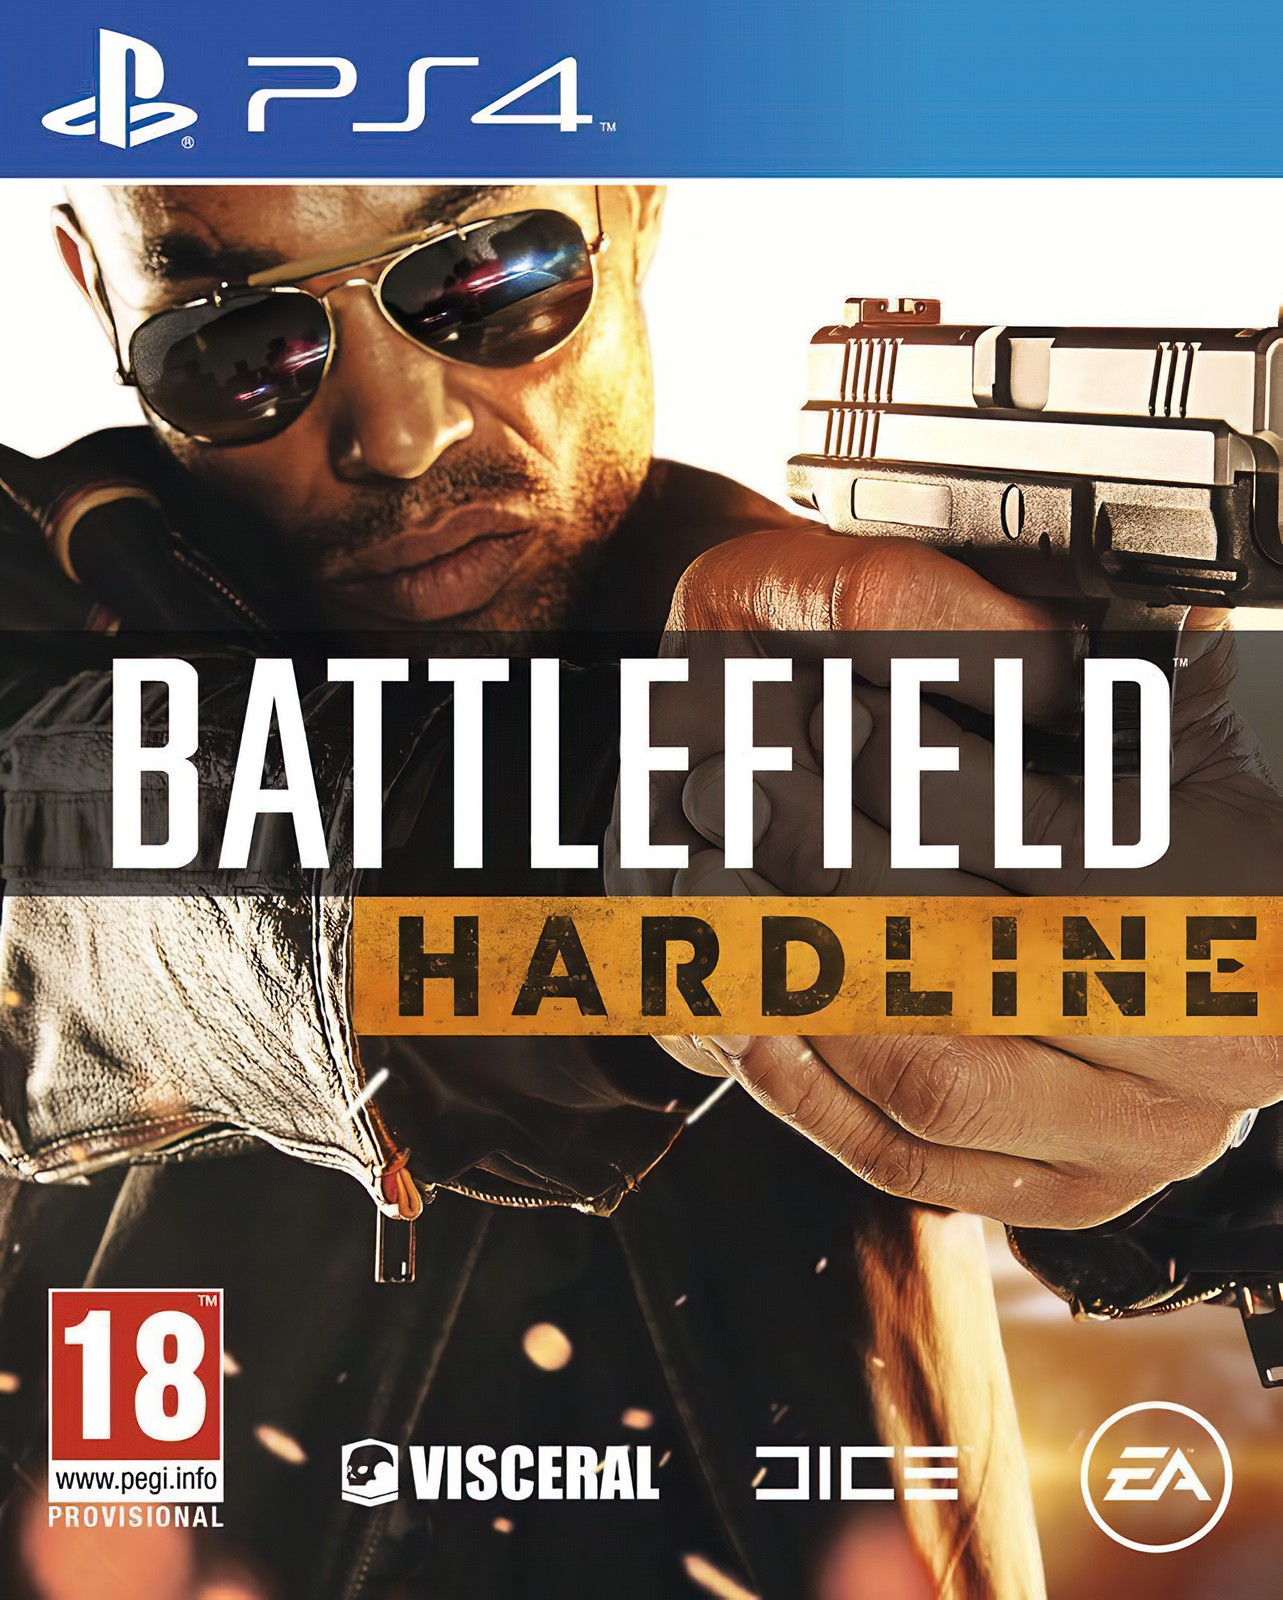 Battlefield: Hardline [PS4] 5.05 / 6.72 / 7.02 [EUR] (2015) [Русский] (v1.09)